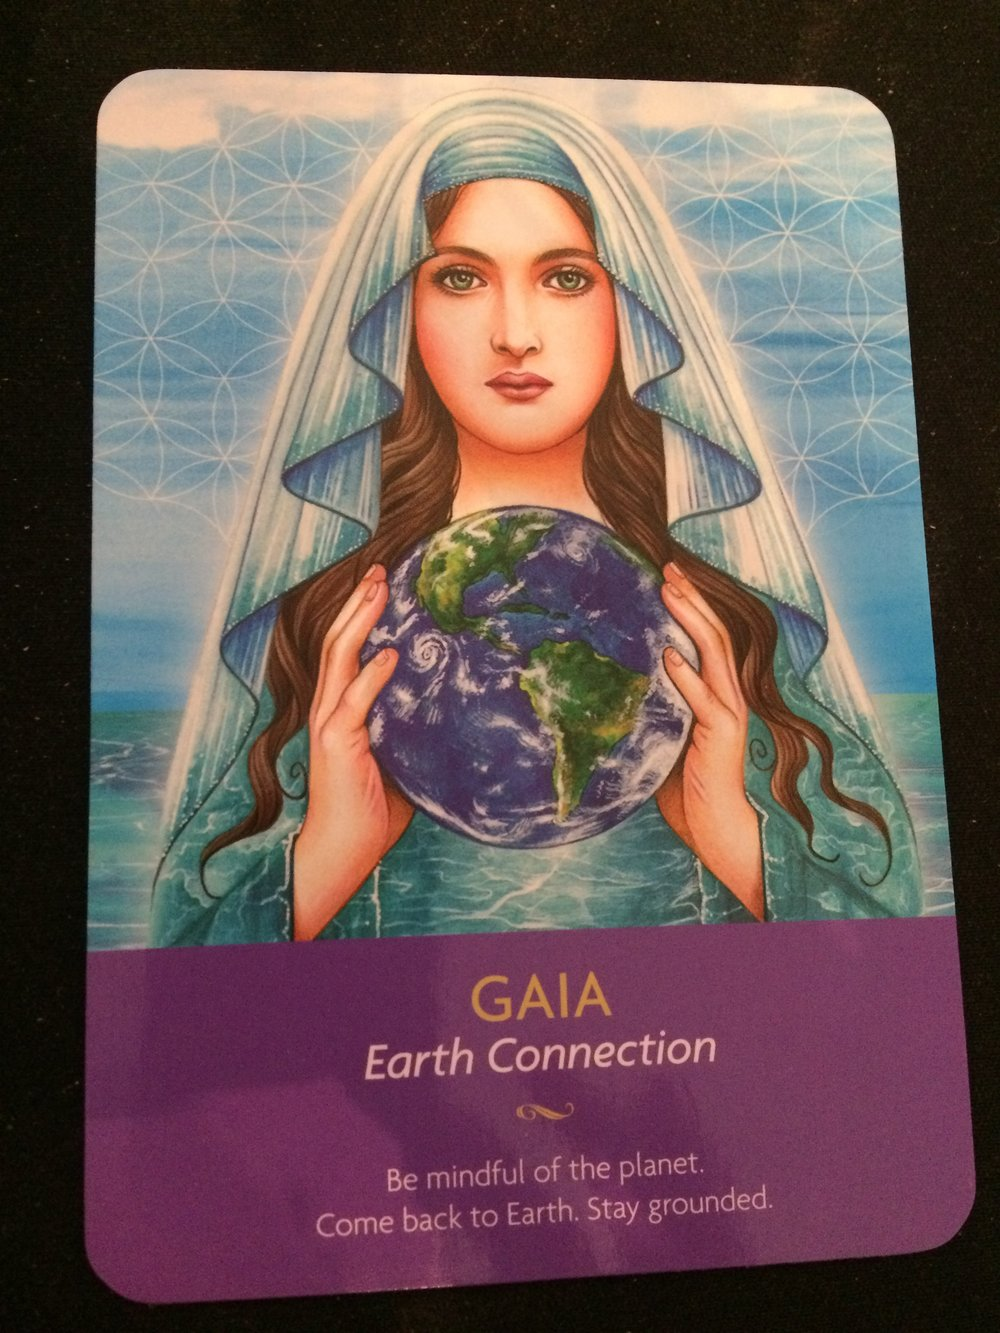 Gaia - Earth Connection